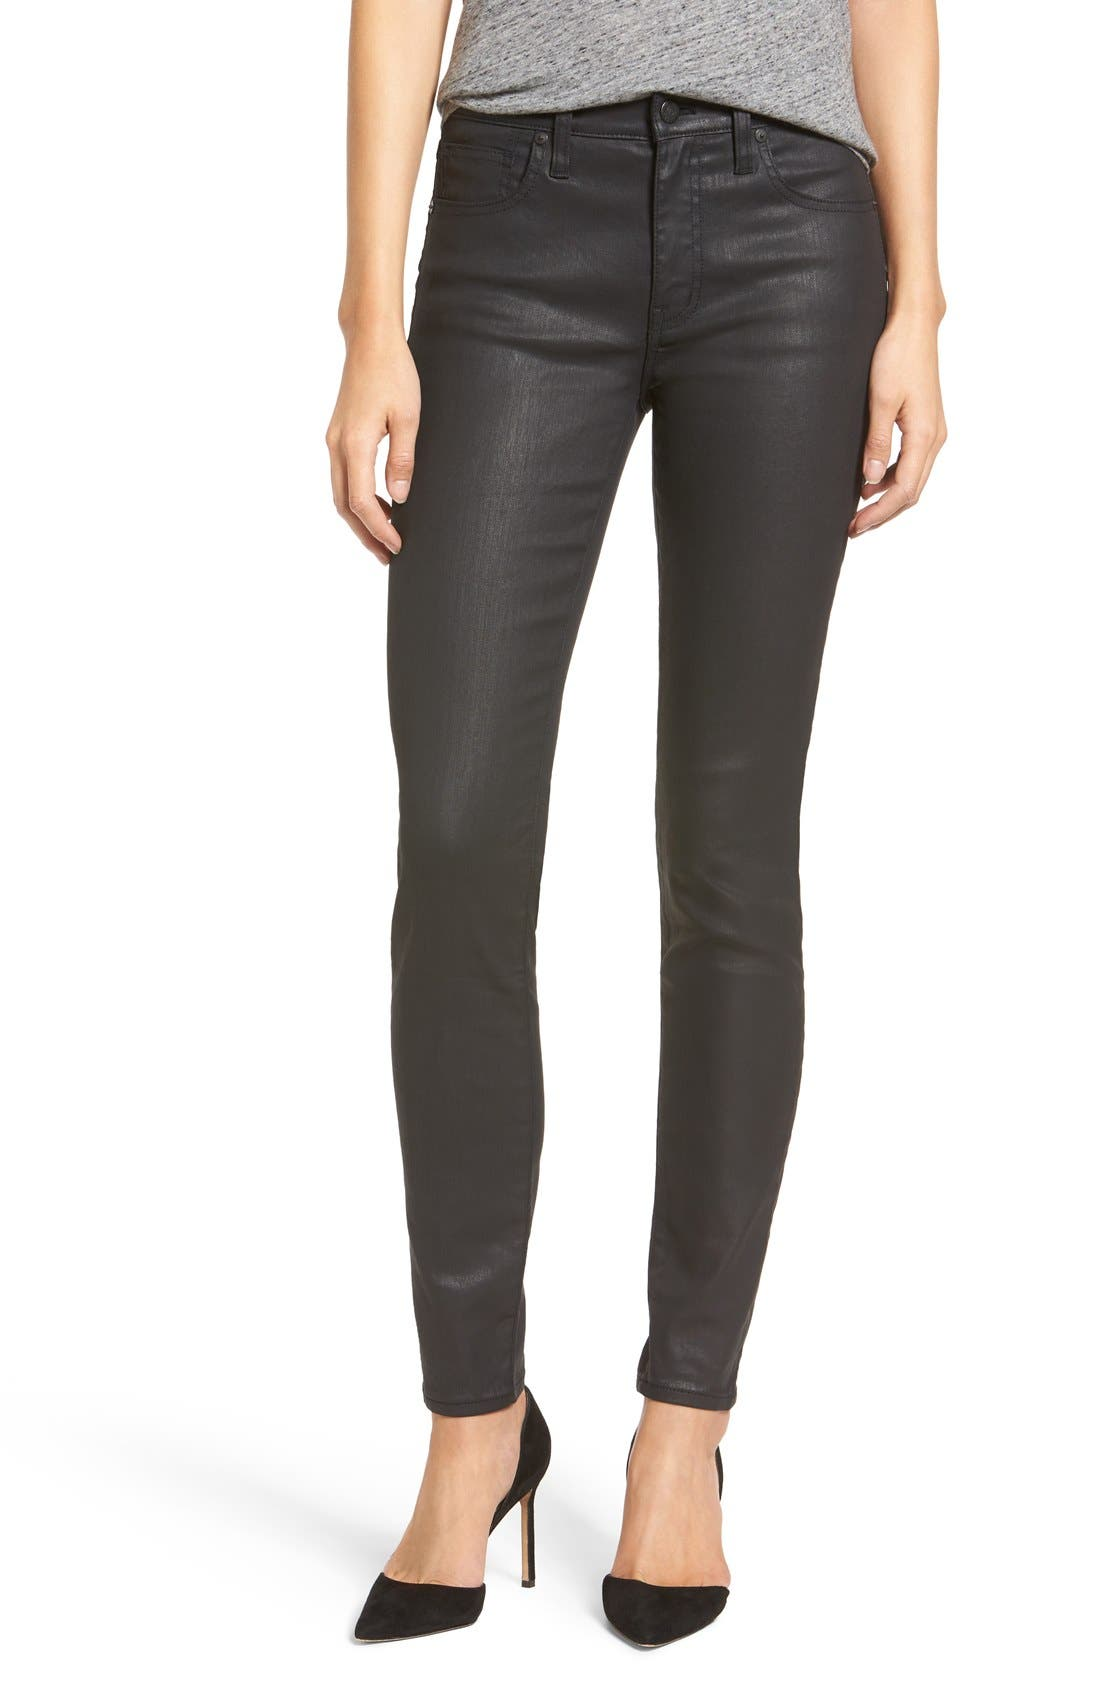 'High Riser' Coated Skinny Jeans,                             Main thumbnail 1, color,                             001